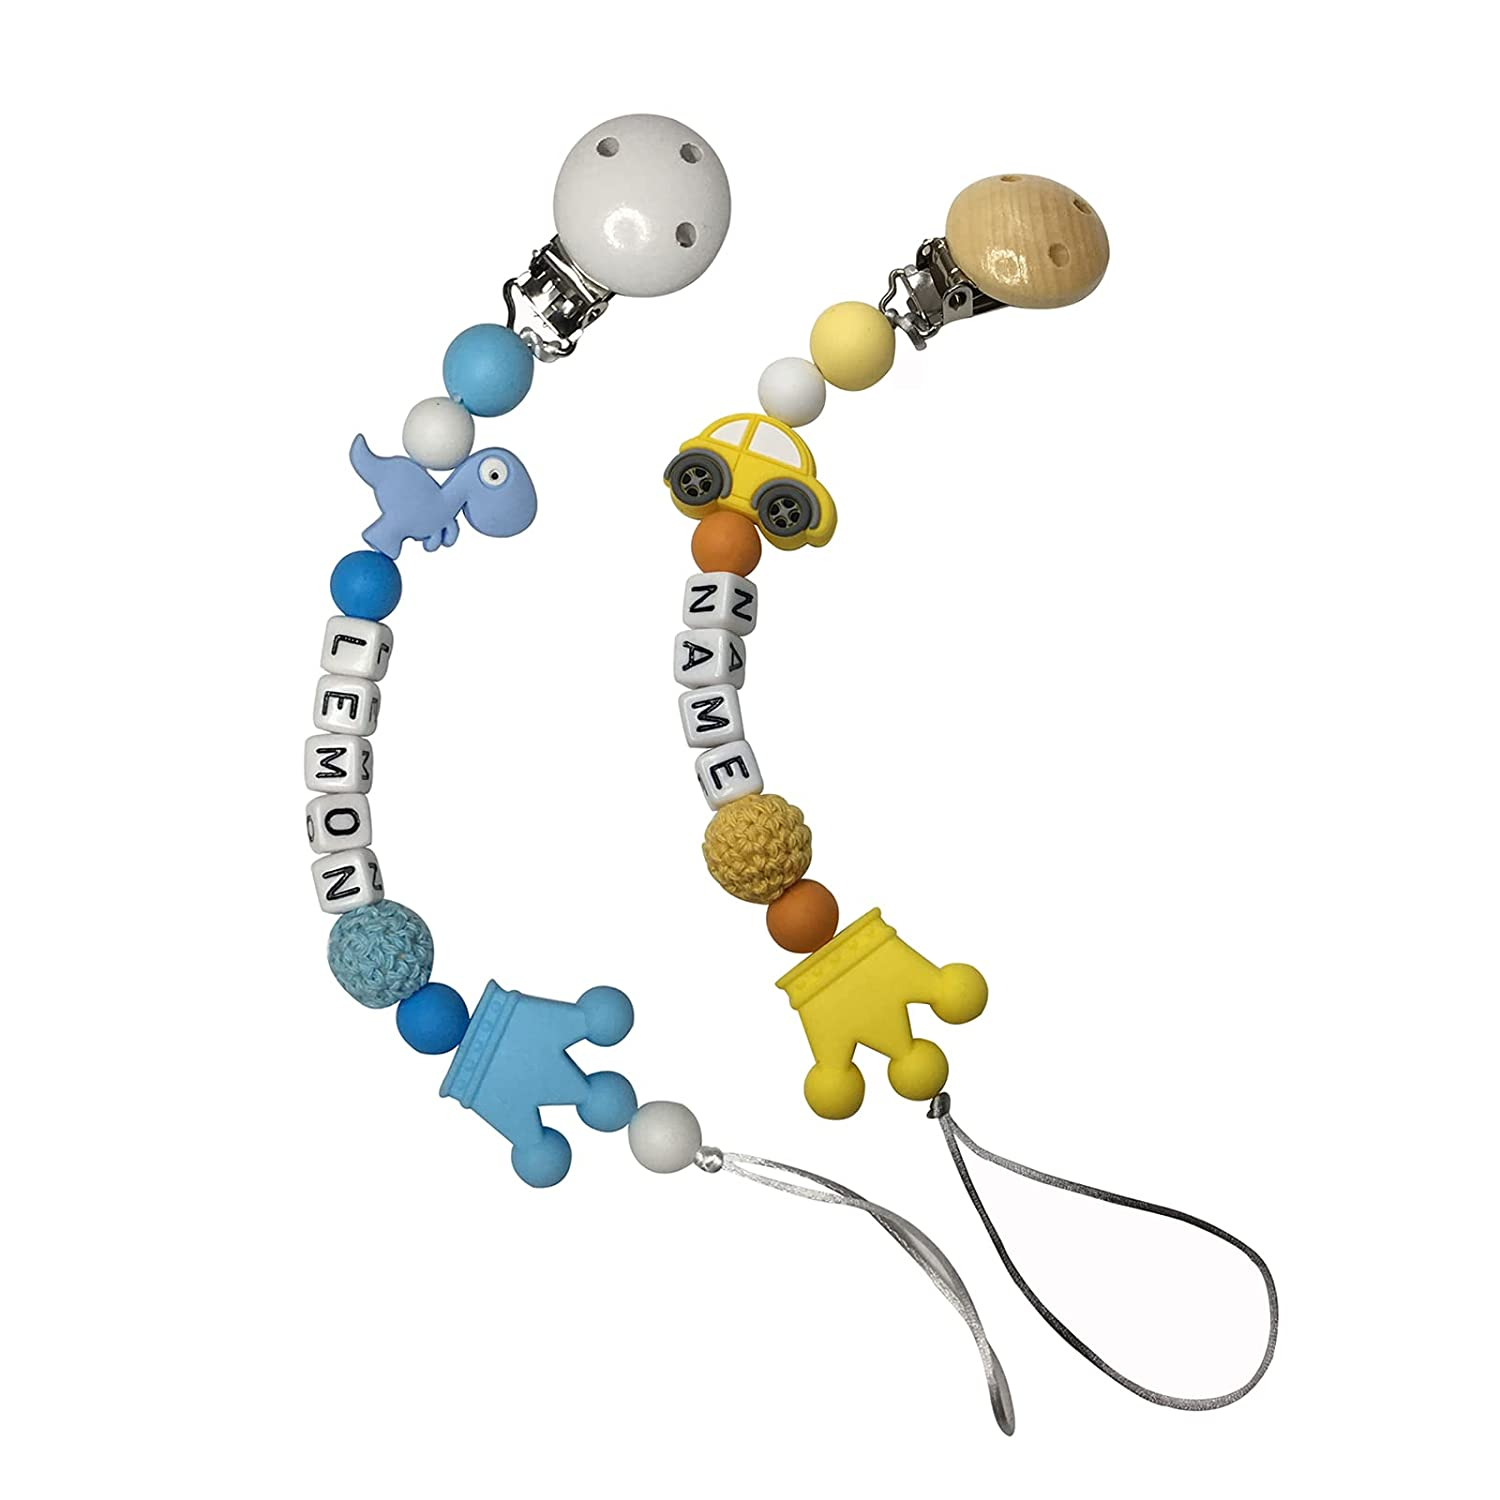 Baby Pacifier Clip with Personalized Name Food Grade Silicone Soothing Toy Lovey Car/Dinosaur Soother Chain Customizable Pacifier Holder Clips Great Gifts for Newborn, 2 Pack(Yellow/Blue)